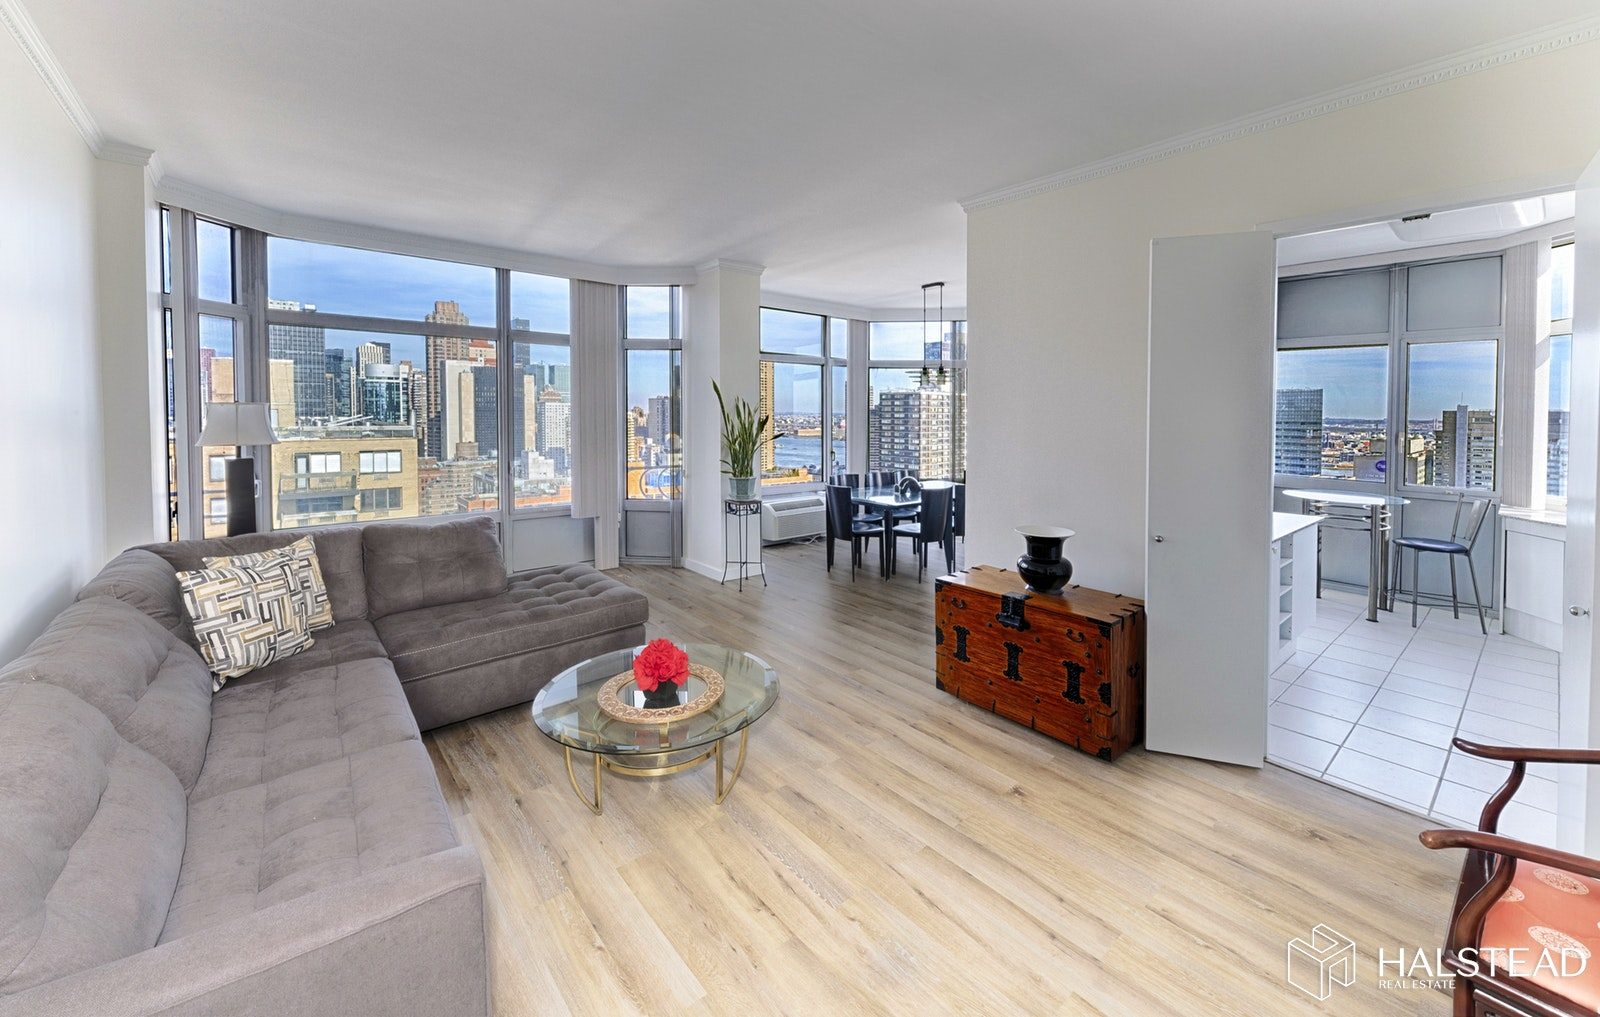 200 East 32nd Street 28e, Murray Hill Kips Bay, NYC, 10016, $1,650,000, Property For Sale, Halstead Real Estate, Photo 1